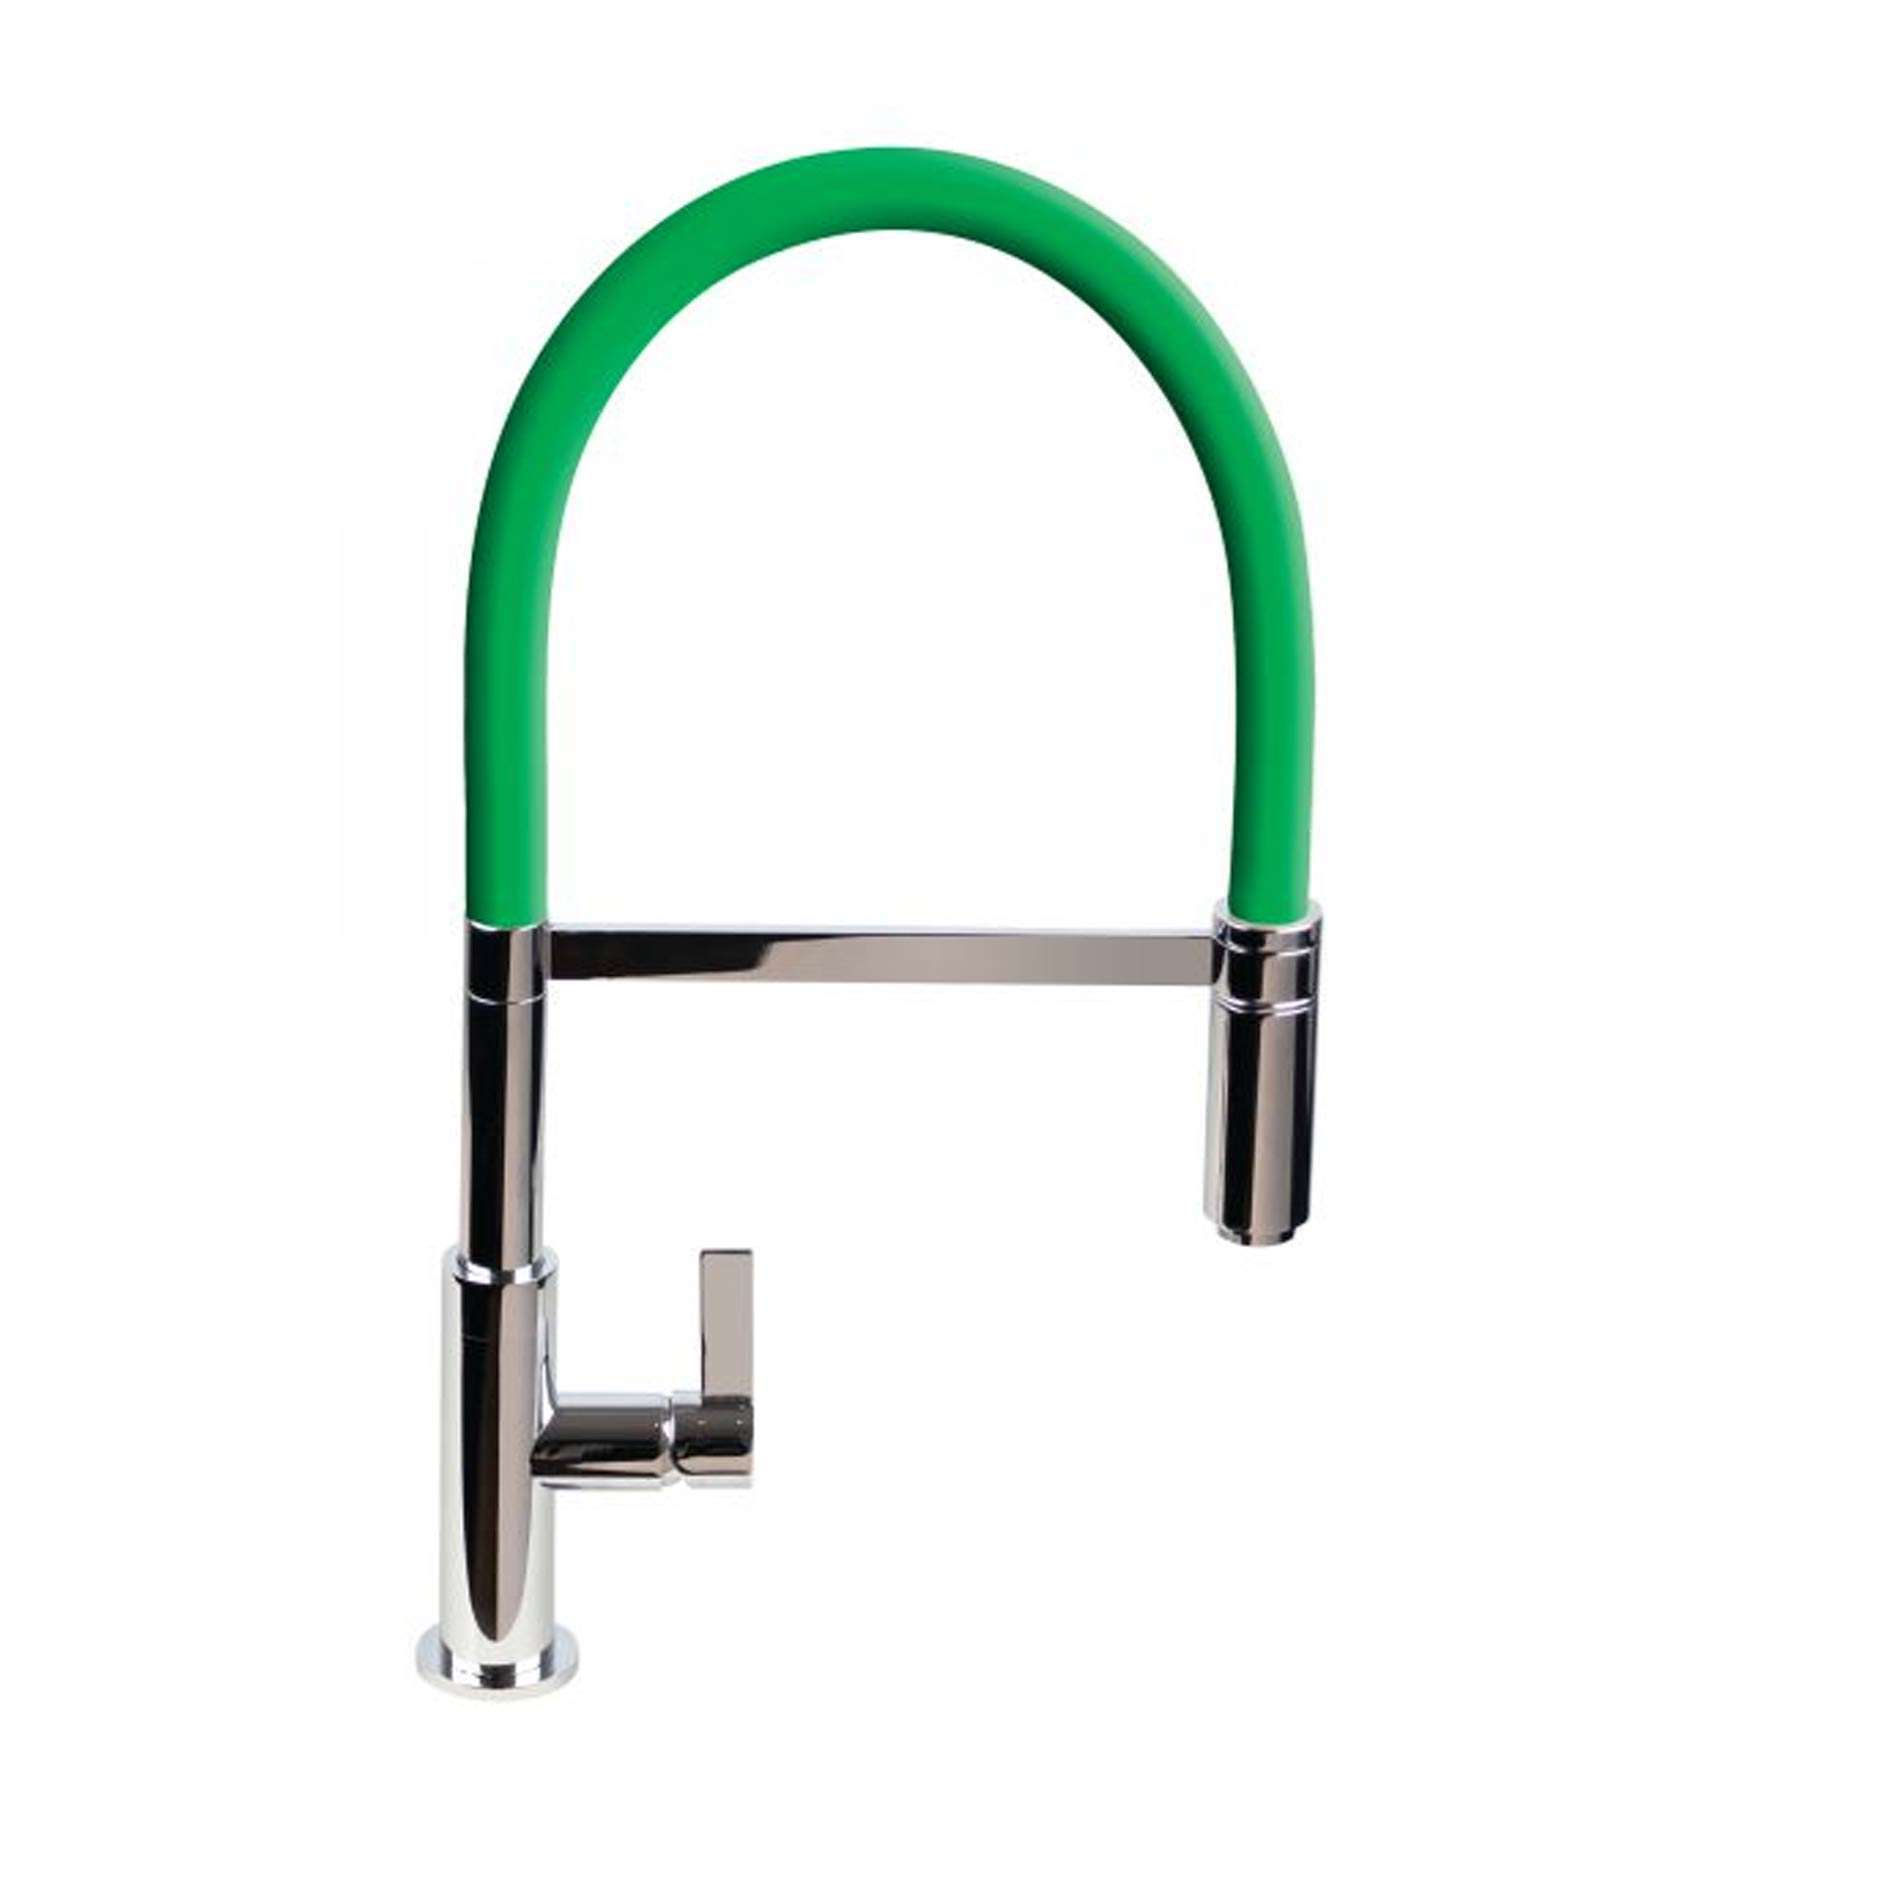 Picture of Spirale Brushed And Green Flexible Spout Tap